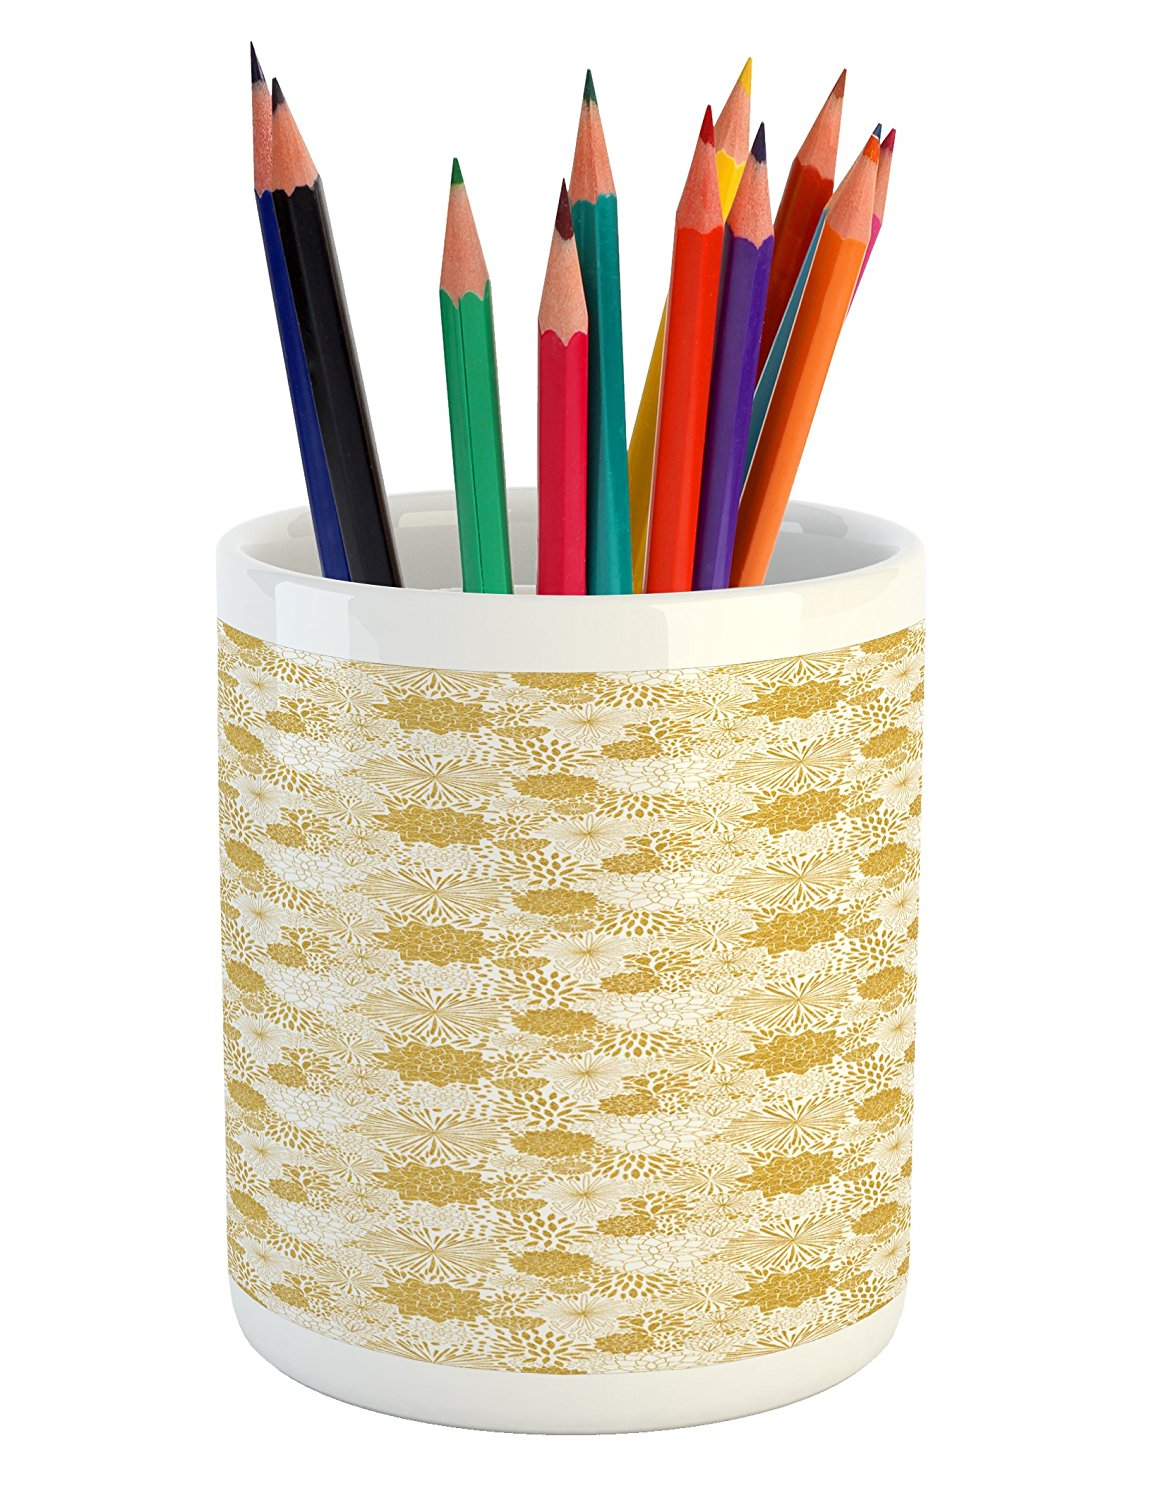 Floral Pencil Pen Holder by Ambesonne, Abstract Floral Arrangement with Blossoming Petals and Leaves Hand Drawn Dots, Printed Ceramic Pencil Pen Holder for Desk Office Accessory, Yellow and White